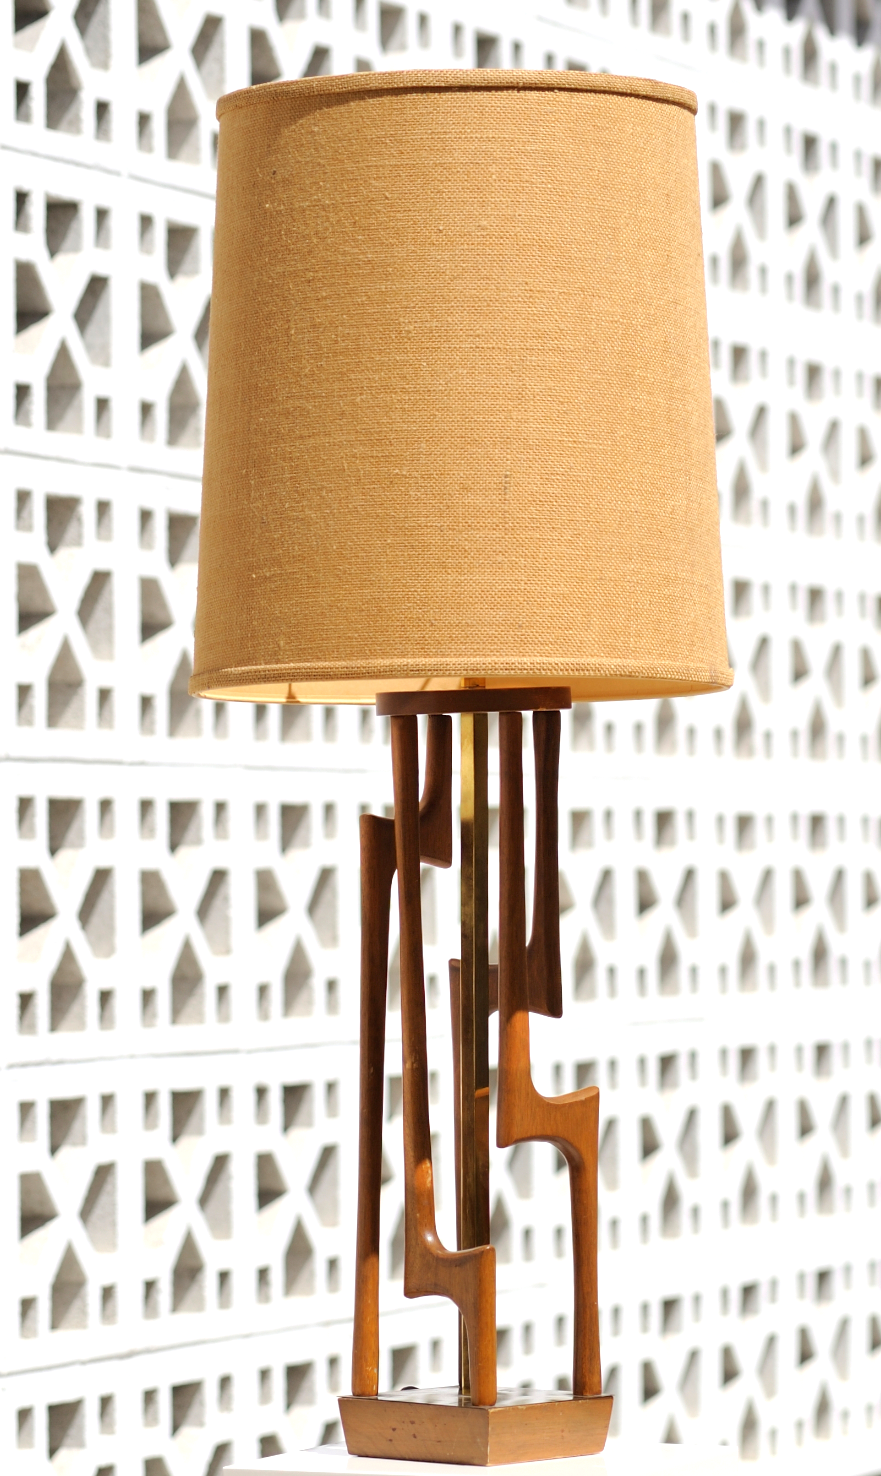 "Vintage Handmade Lamp Designer unknown Circa: 1955-1965? Wood with brass vertical rail Brass plate on top of base Base width: 6 X 6"" Height: 40 3/4"" with lamp shade Height: 37"" without lamp shade $500."